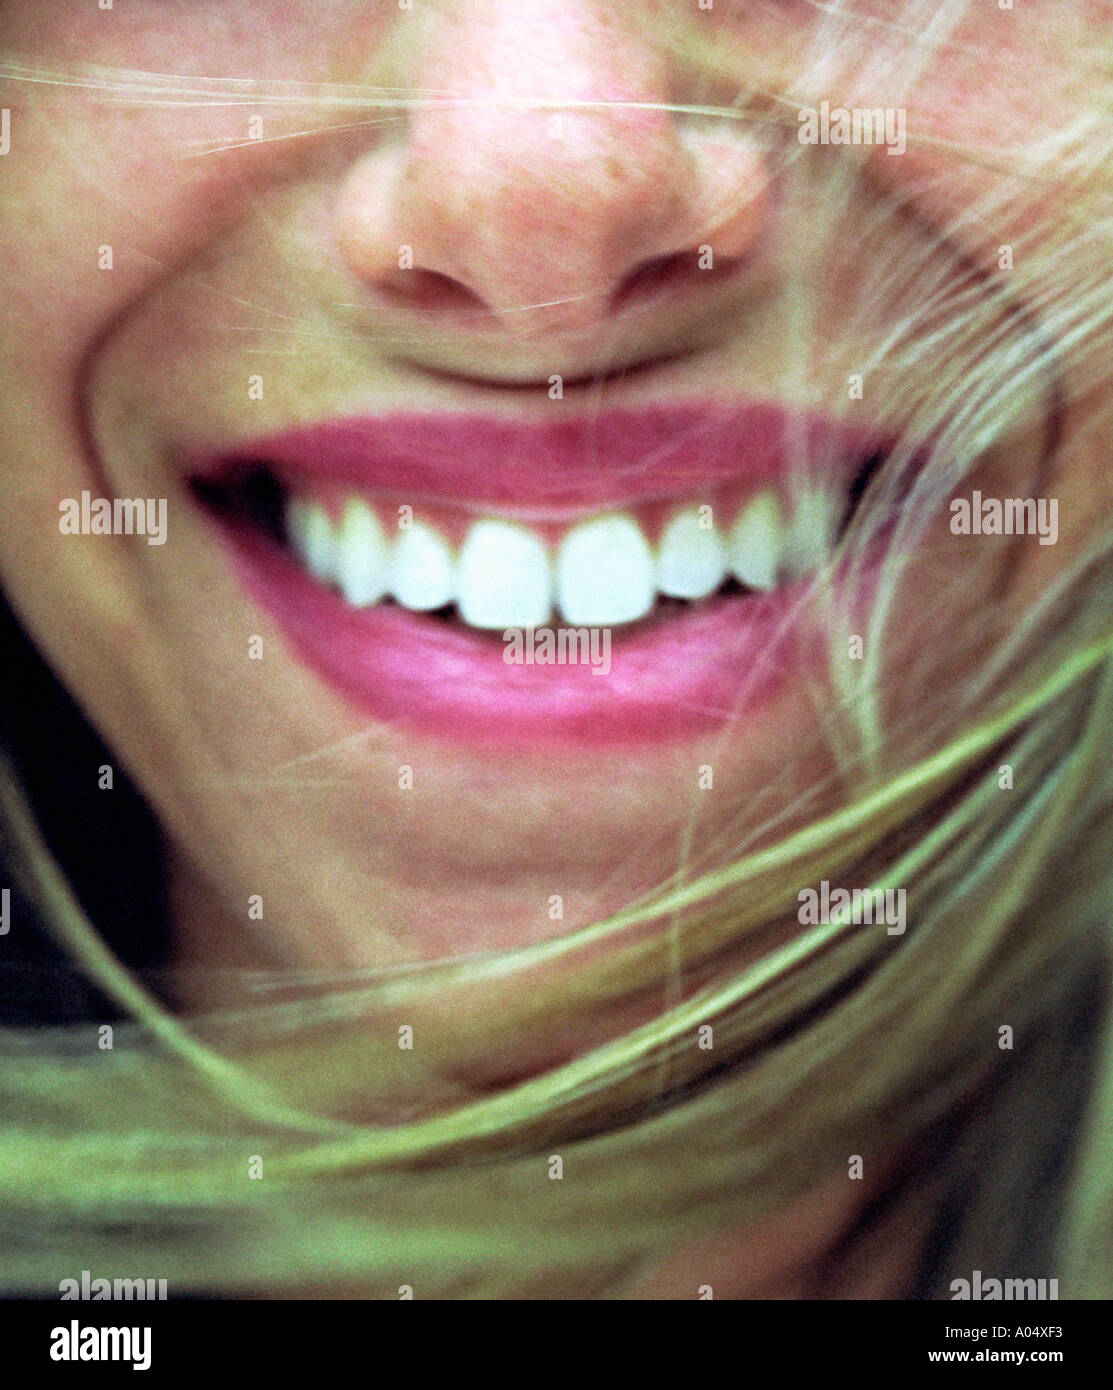 A close-up of a woman smiling with the wind blowing and showing her teeth. - Stock Image